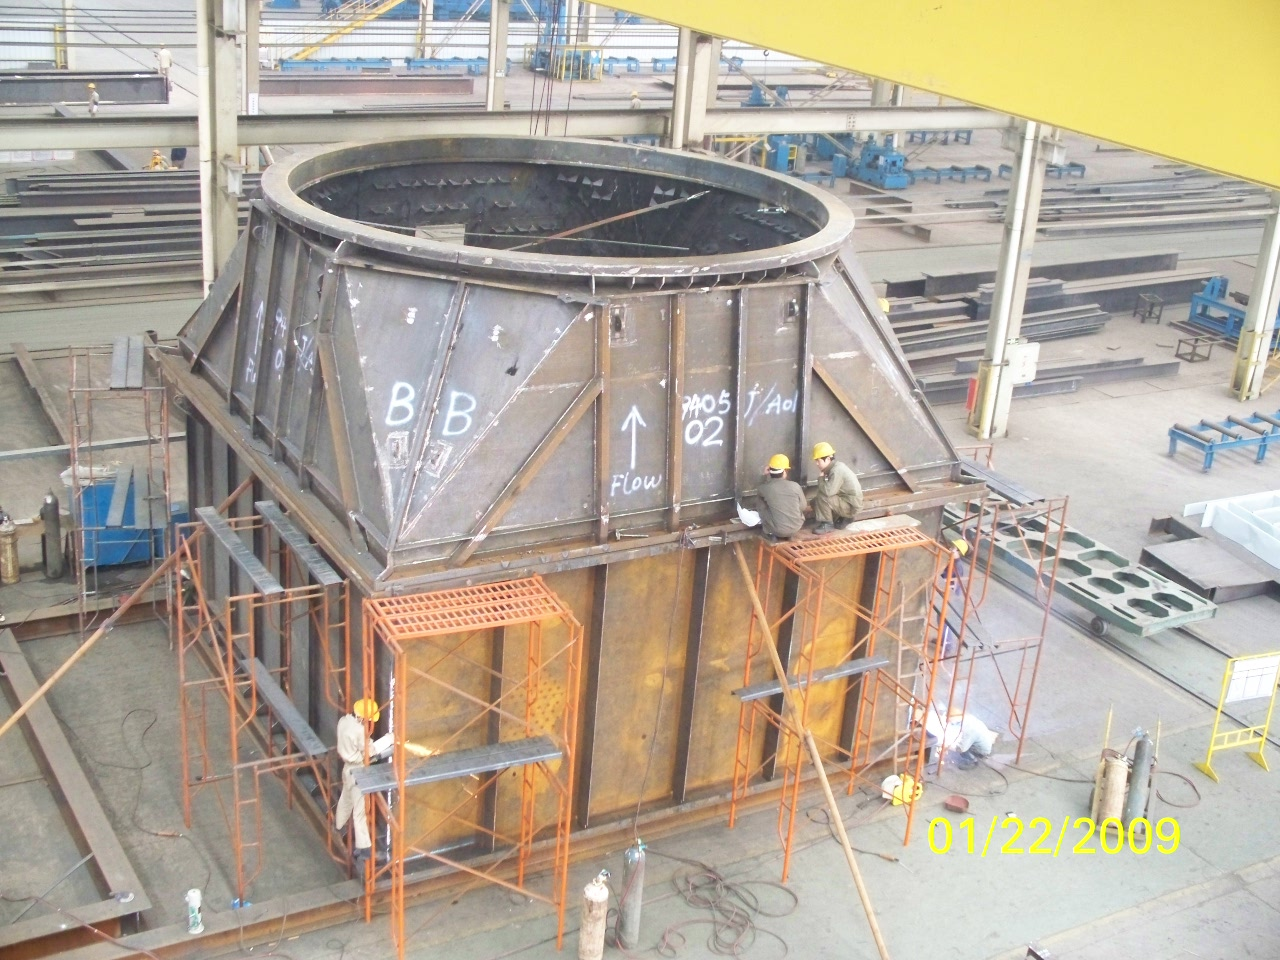 Steel Structures Exhaust System For French Alstom Power Plant Equipment pic six